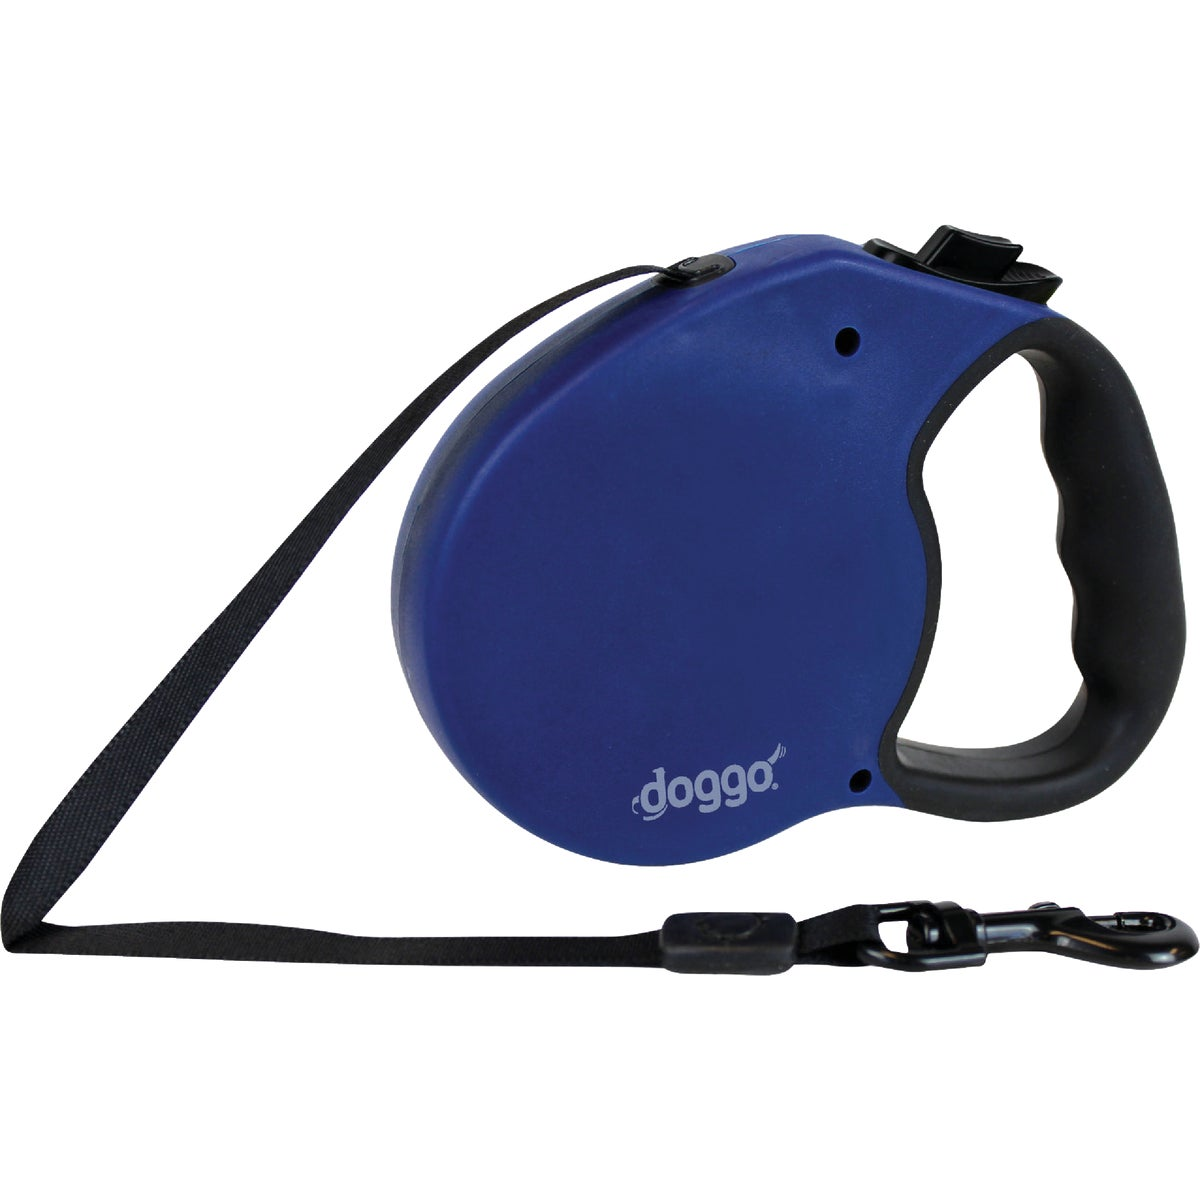 LG BLUE RETRACTBLE LEASH - 3-5BL by Flexi Usa Inc